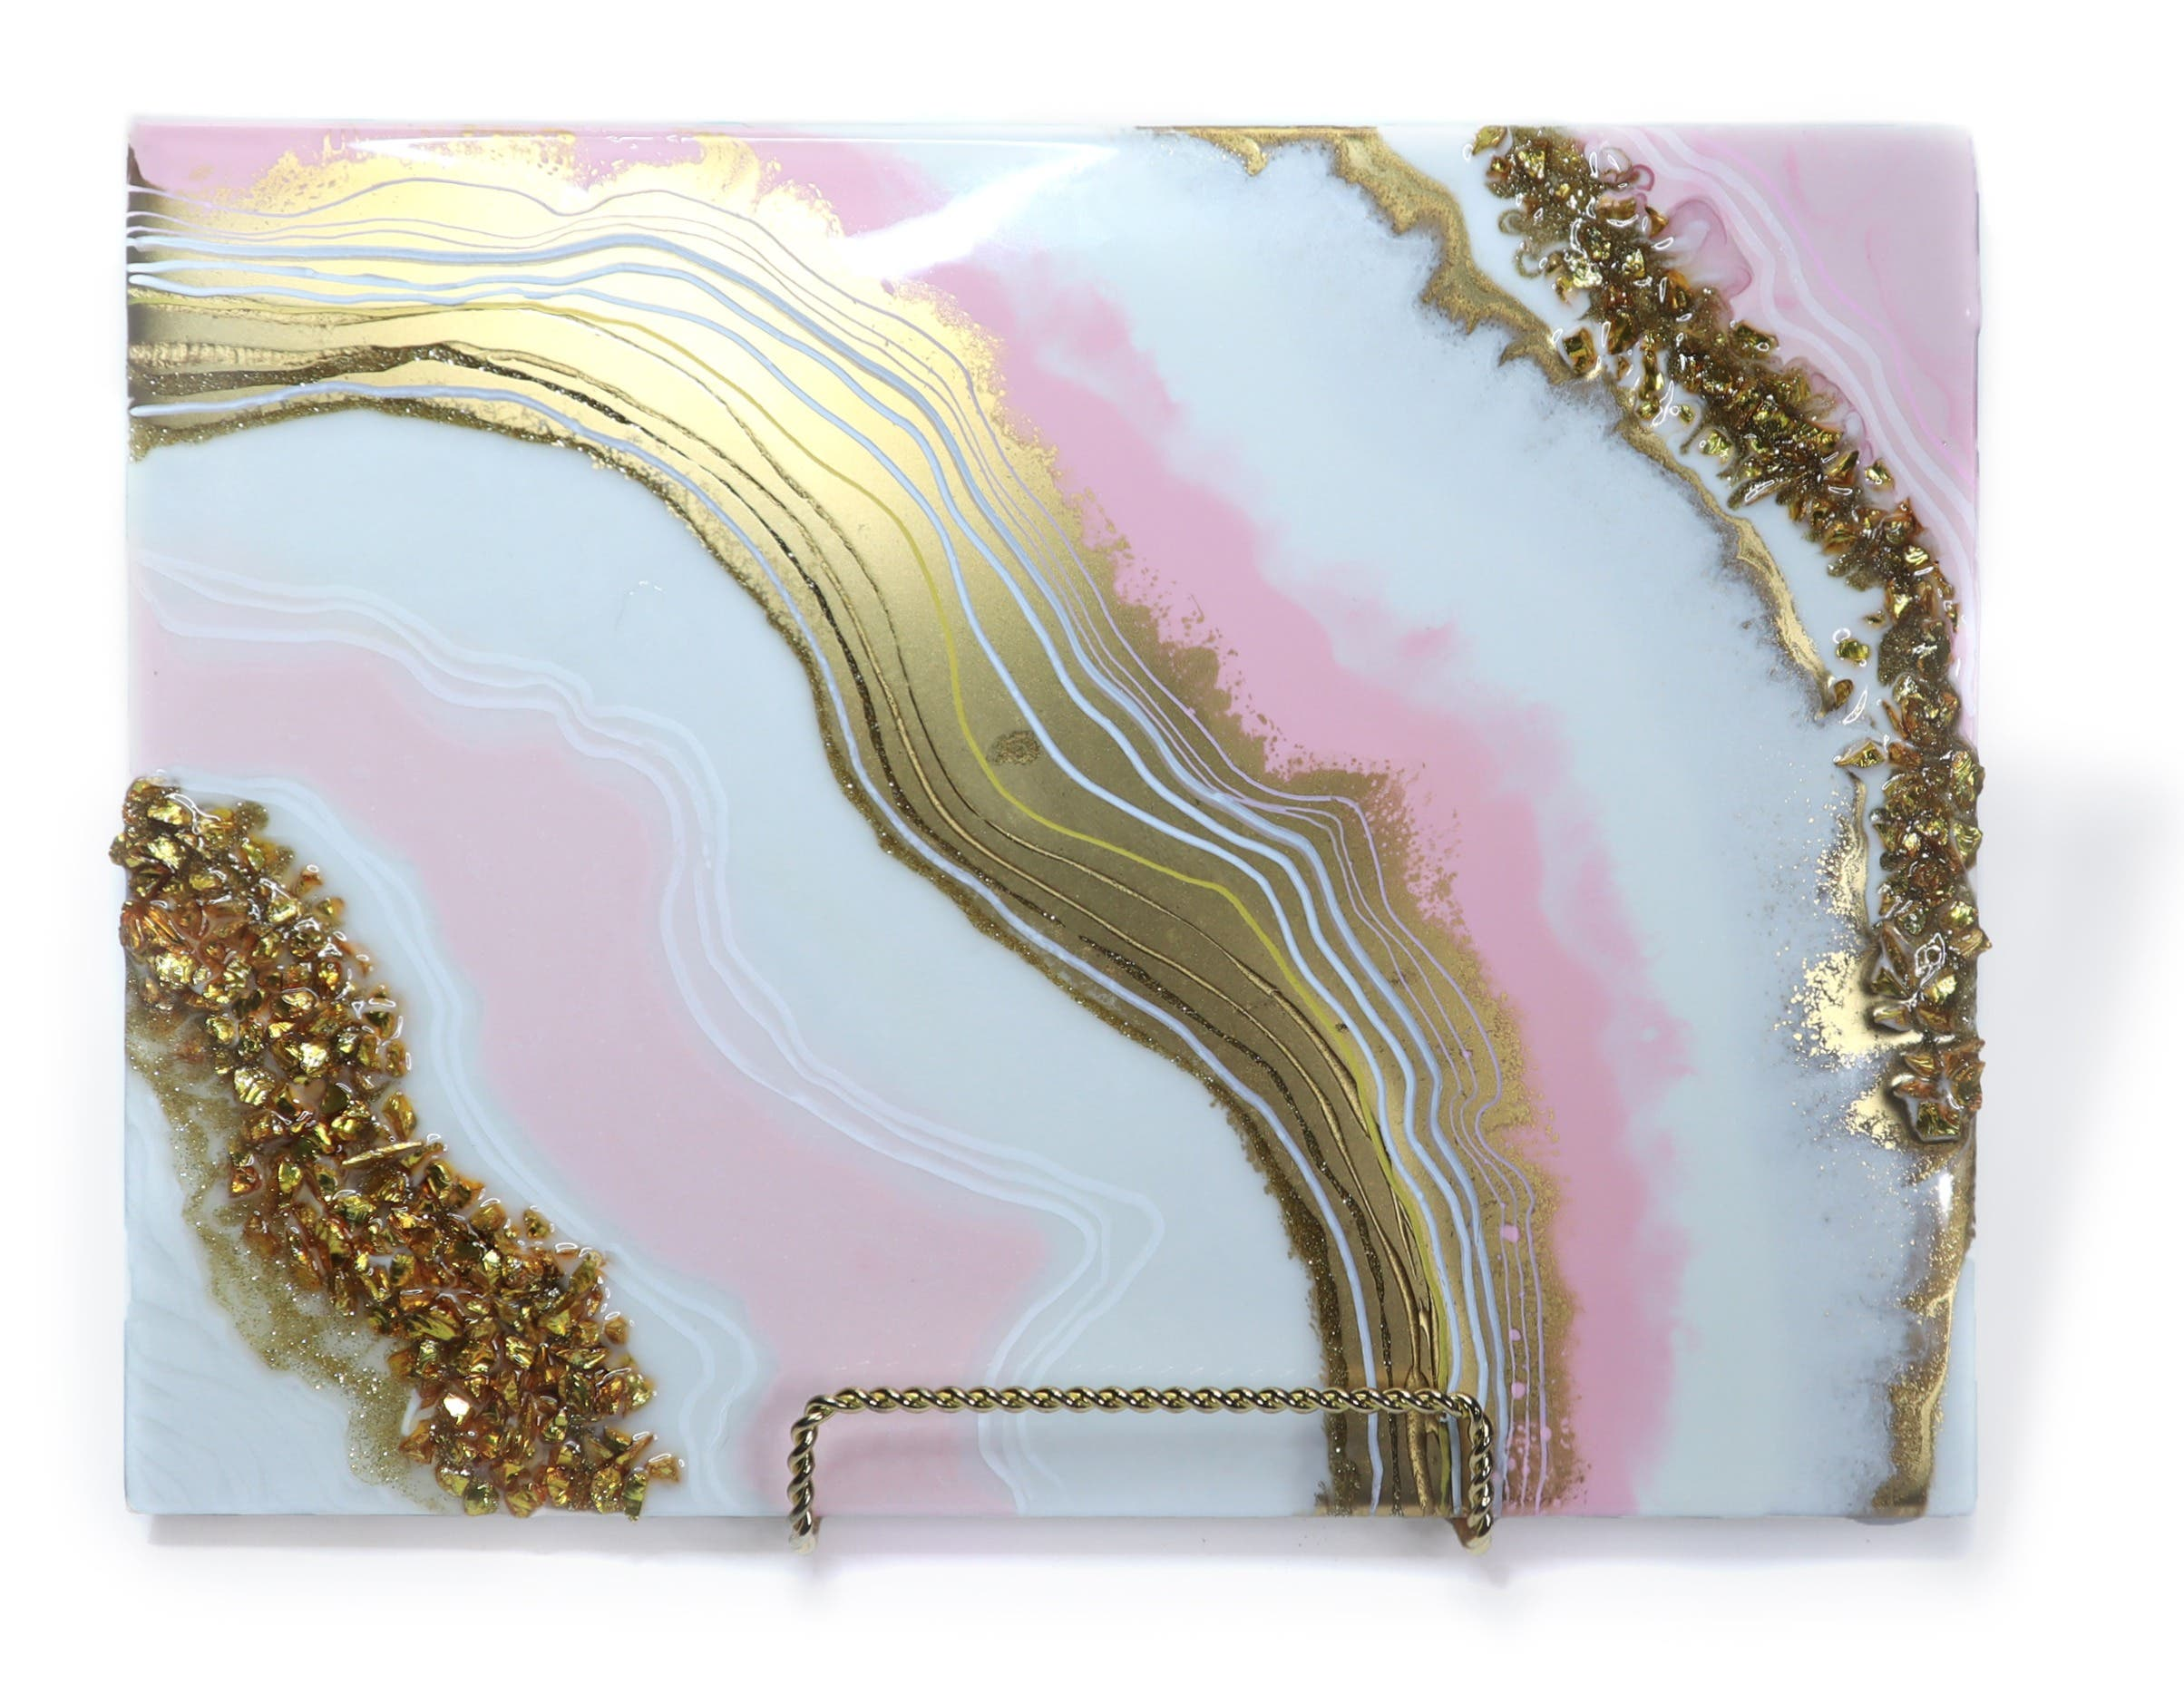 pink, gold and white geode inspired resin painting with bands of pink, gold and white resin and contours of gold glass chips